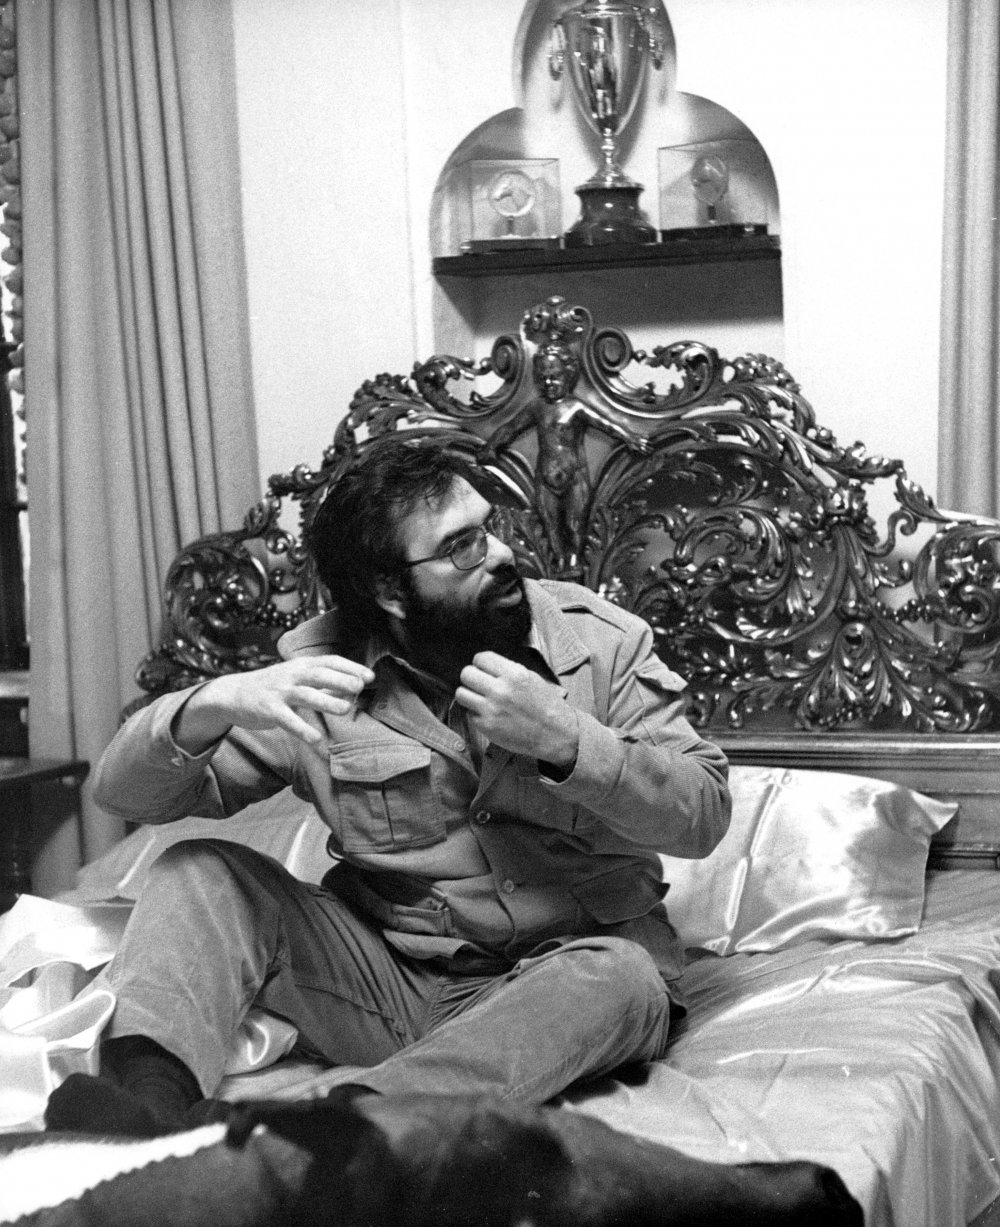 Coppola on the ornate bed used in the famous scene in which movie producer Jack Woltz awakes to find a bloody horse's head lying next to him